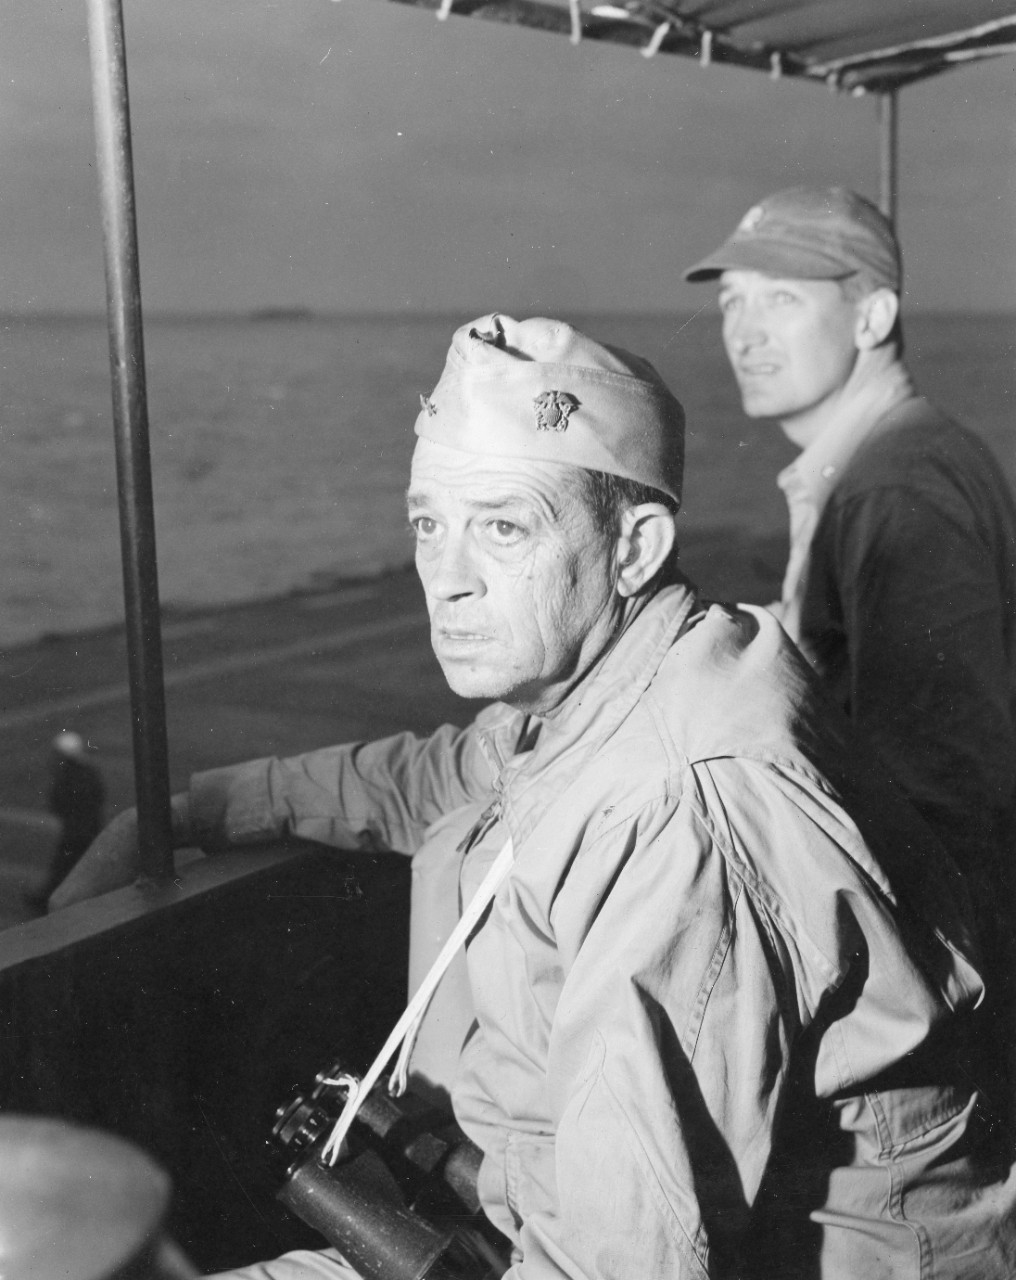 The tension of the Okinawa campaign clearly shows on the faces of Rear Adm. Sprague and Lt. Cmdr. Anderson F. Hewitt as they watch flight operations from the bridge, April 1945. (U.S. Navy Photograph 80-G-371327, National Archives and Records Administration, Still Pictures Division, College Park, Md.)